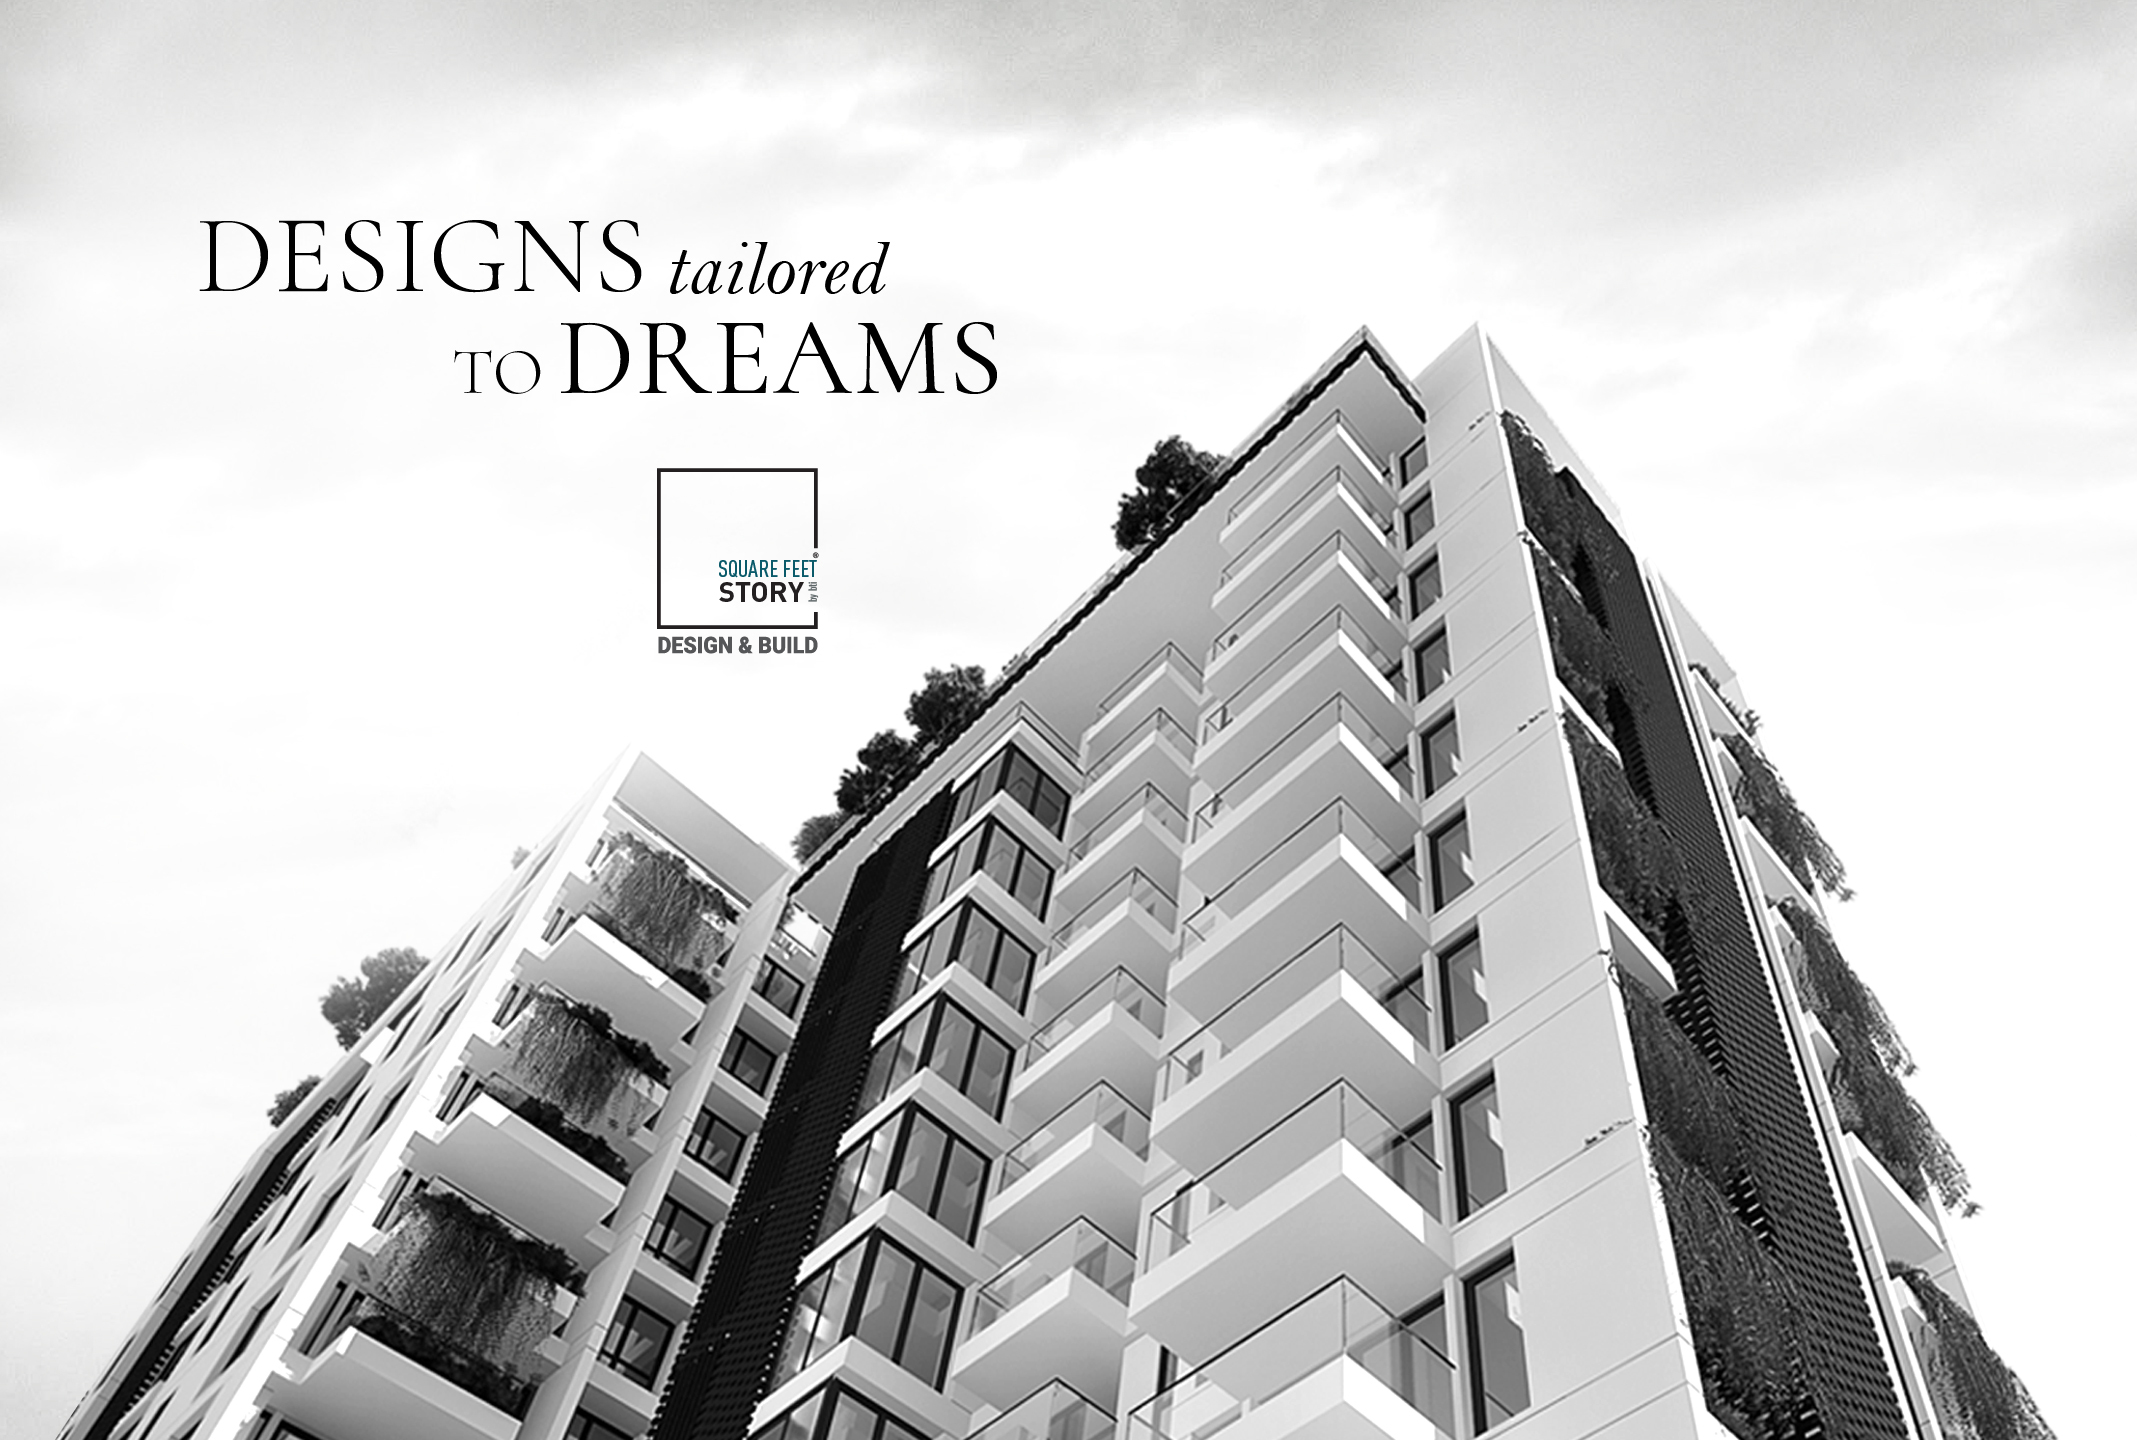 Designs Tailored to Dreams: Square Feet Story